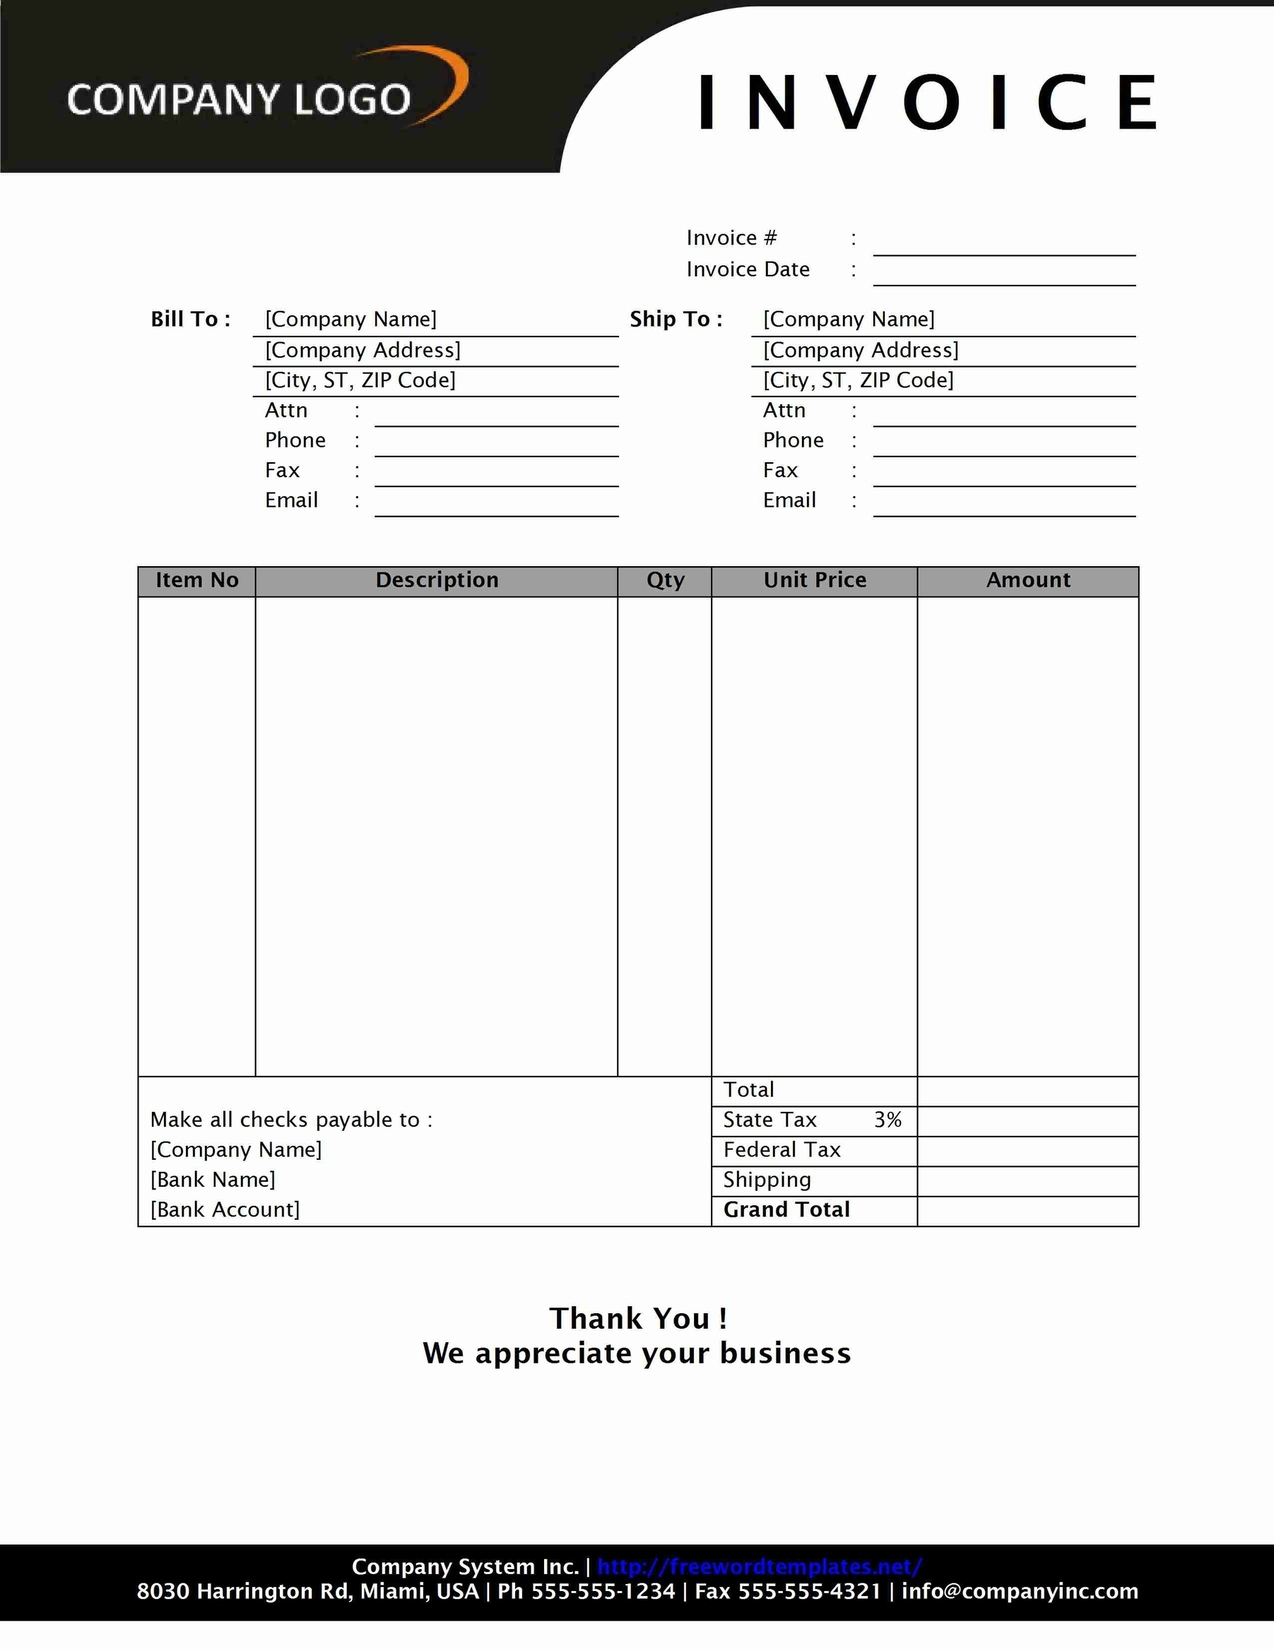 Sales Invoice Print Format With Fixed Table Length Print Formats